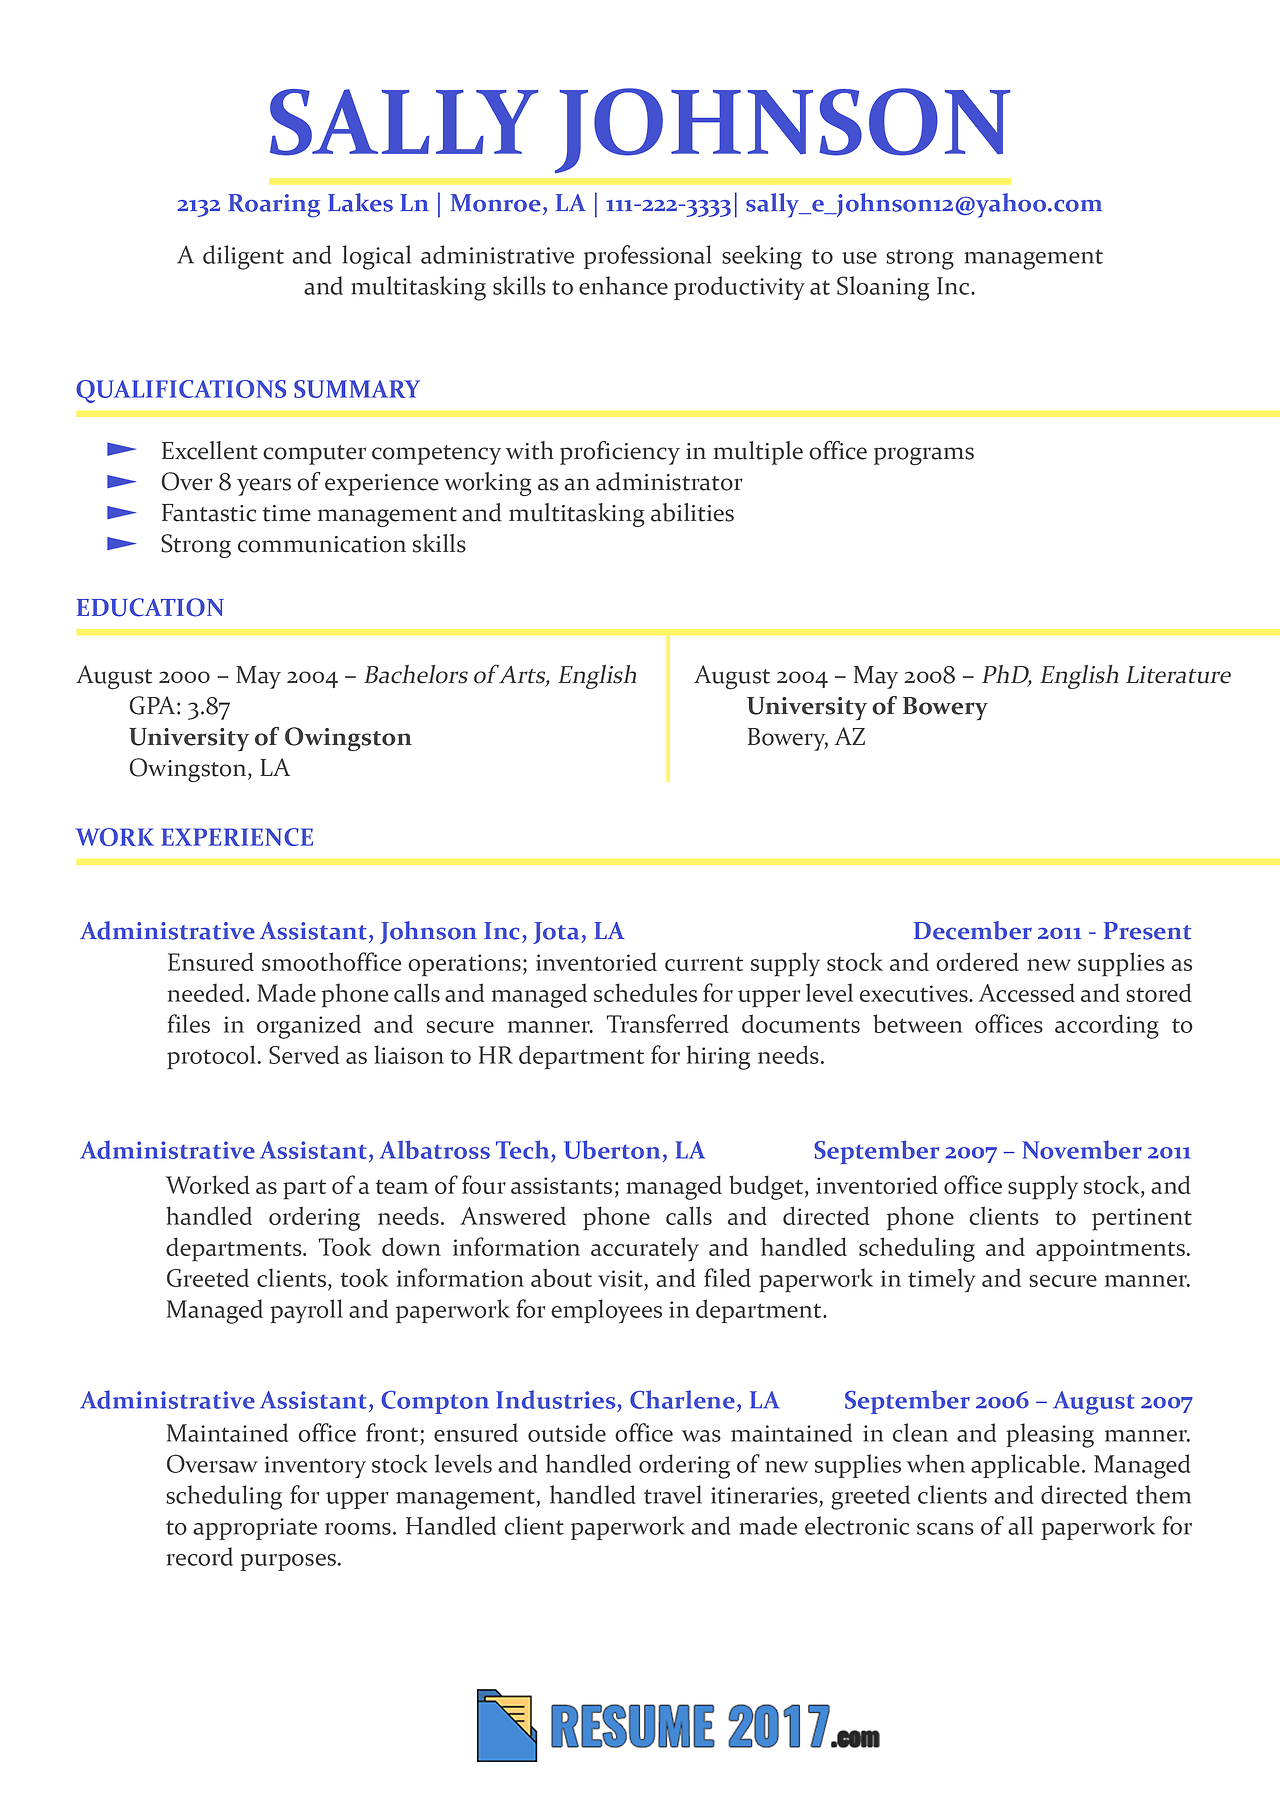 resume examples 2018 usa  examples  resume  resumeexamples